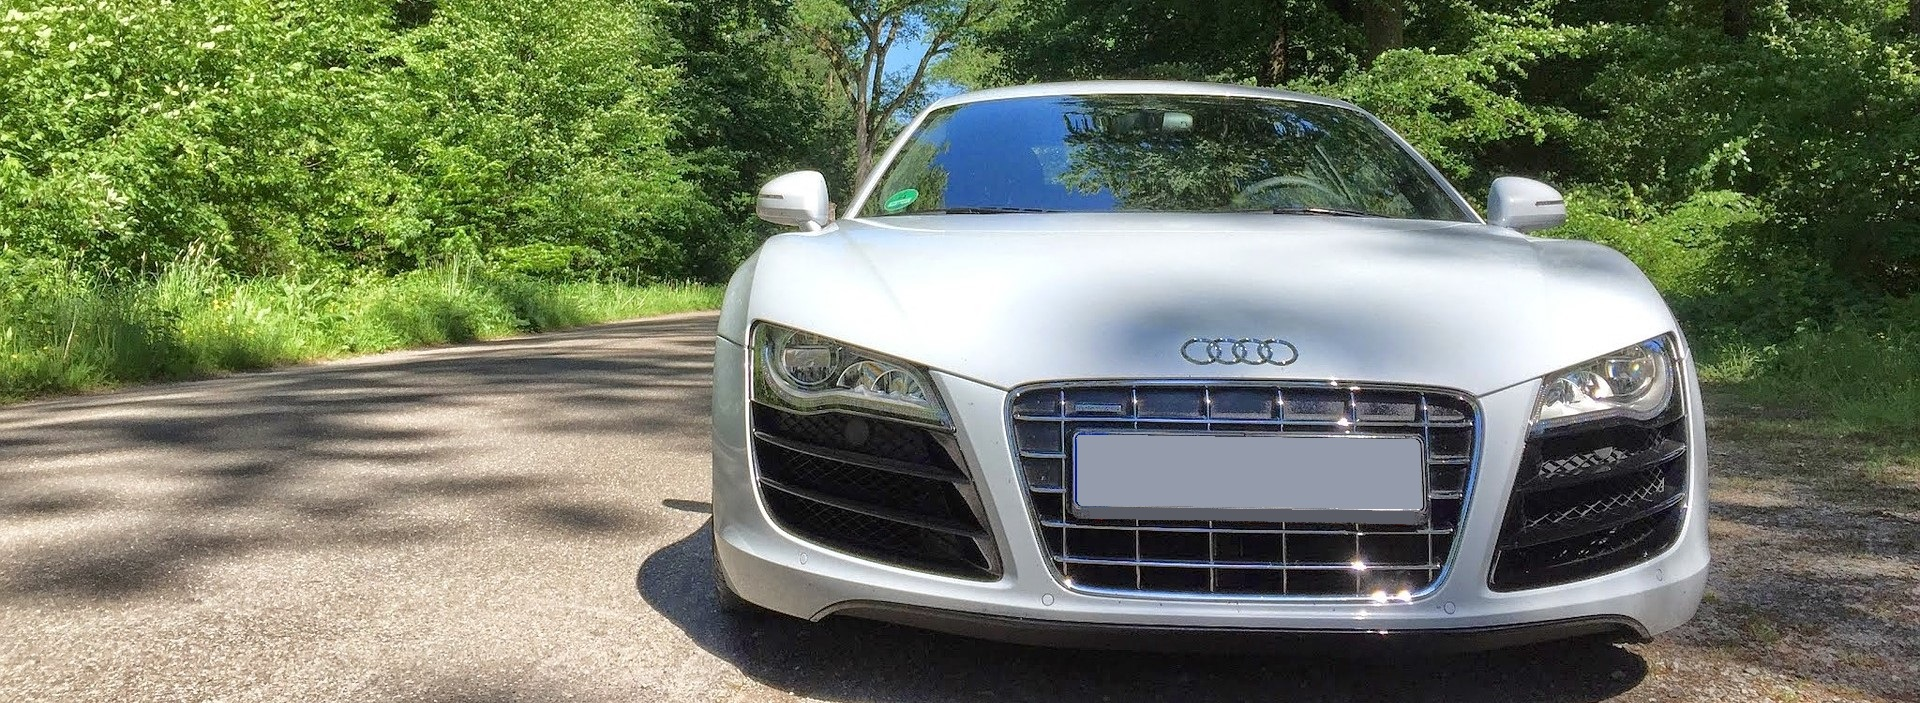 White Audi in Houston, Texas | Breast Cancer Car Donations